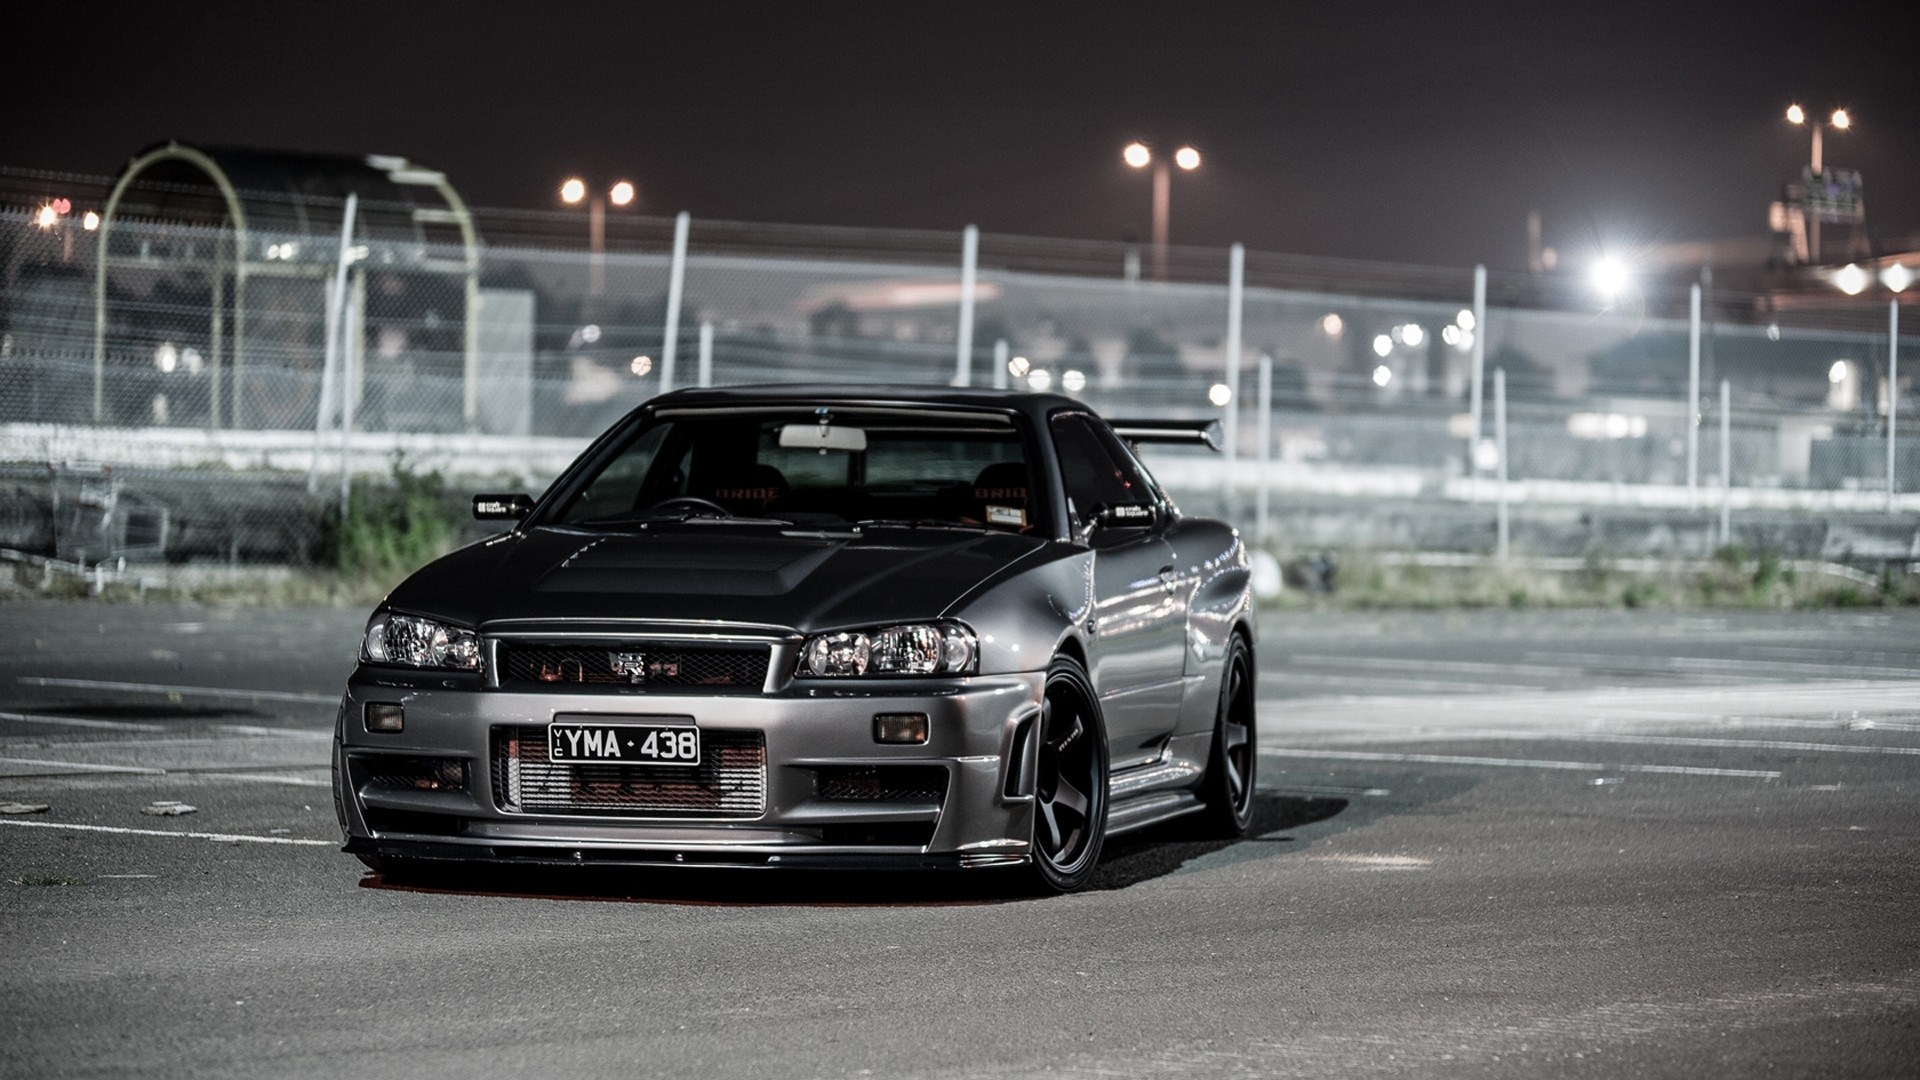 R34 Wallpapers